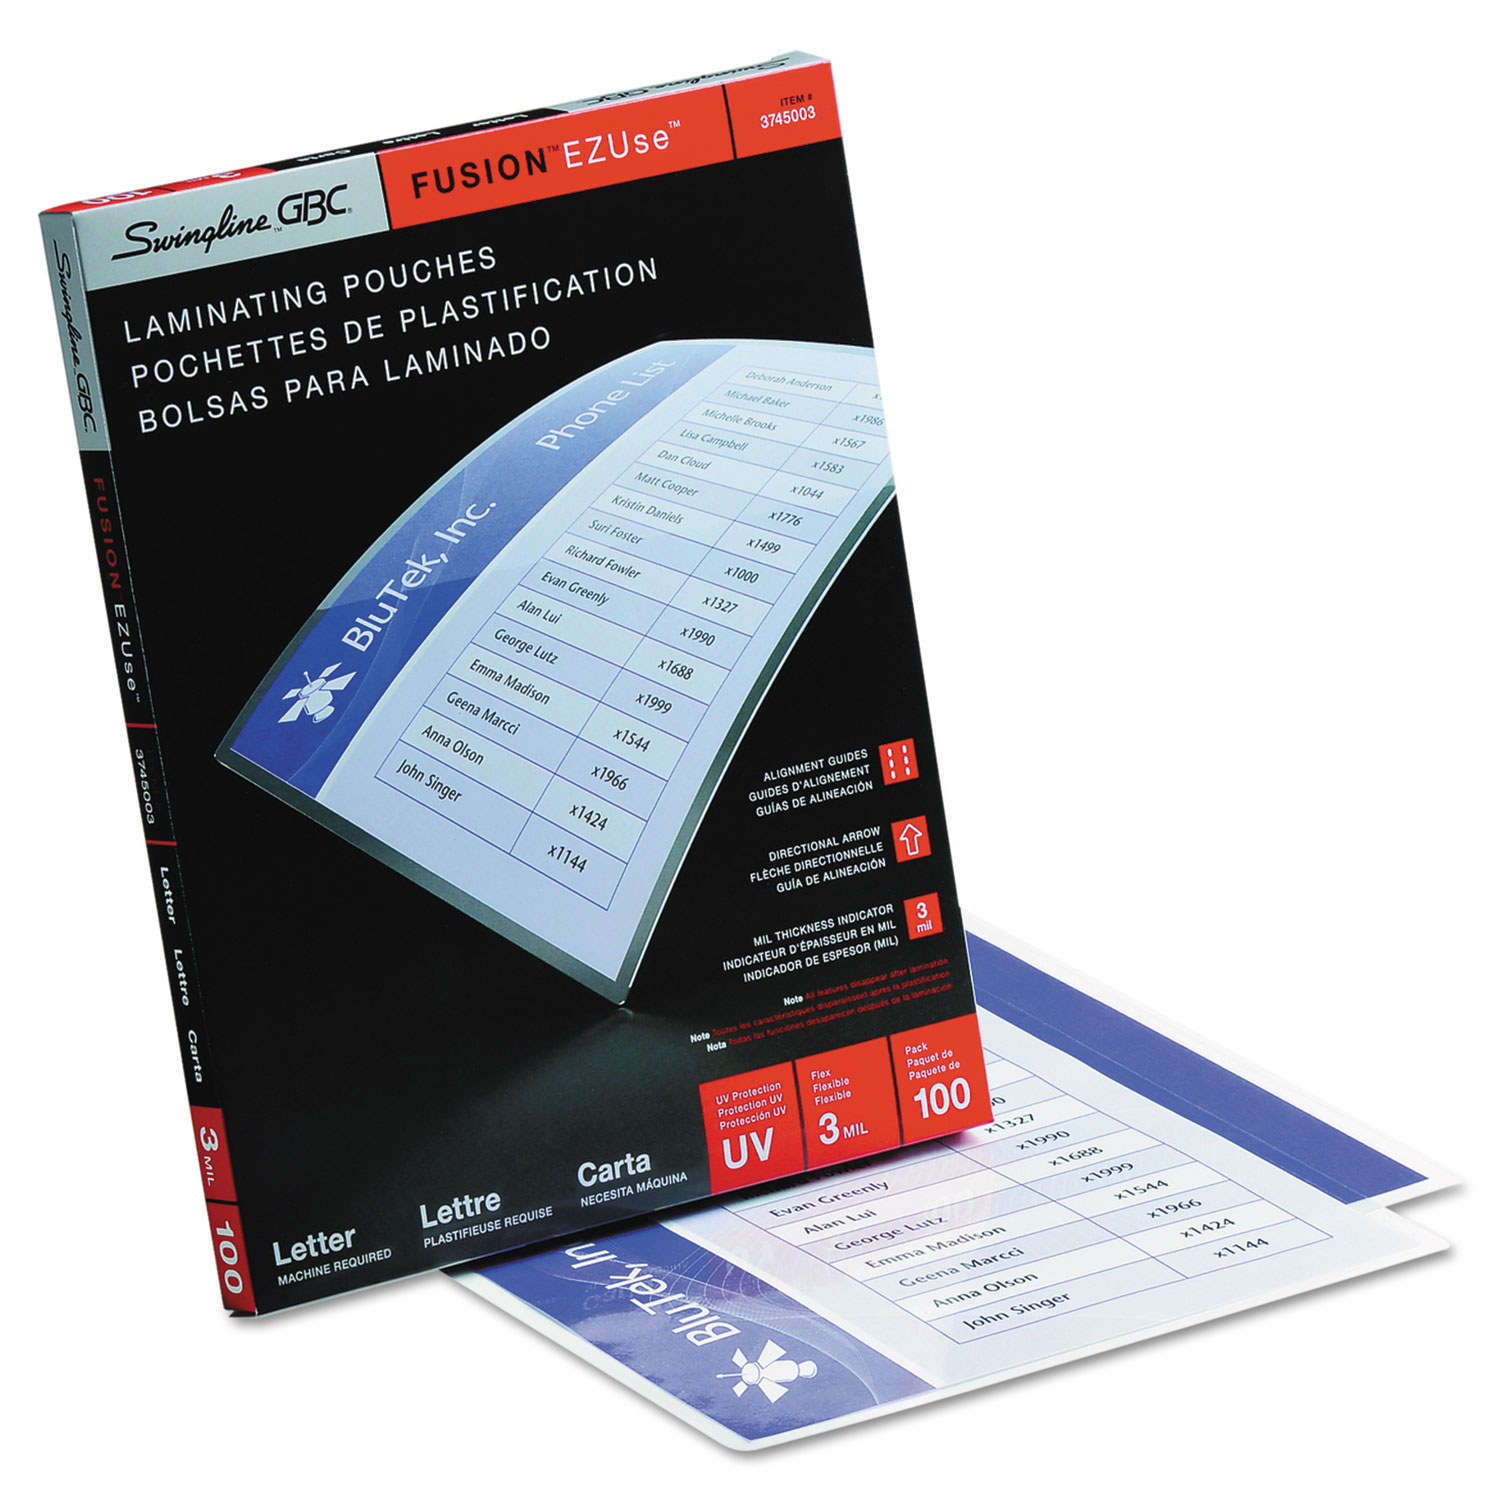 Ezuse Thermal Laminating Pouches By Swingline 174 Gbc